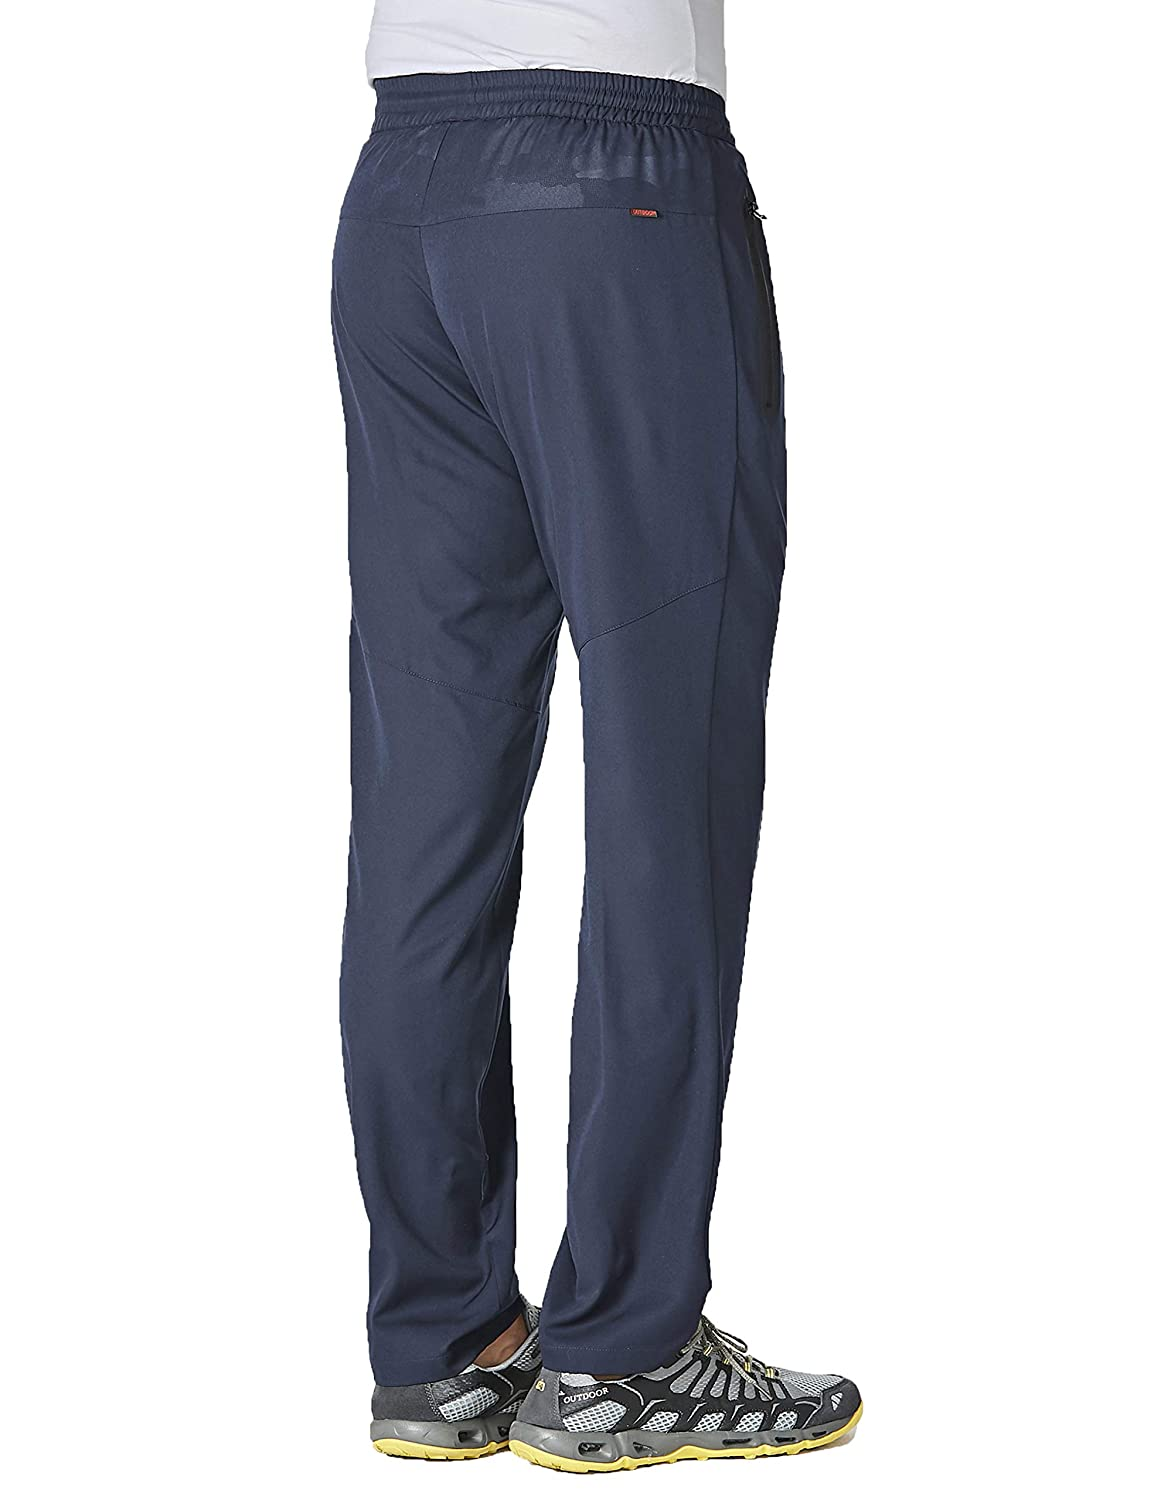 MAGCOMSEN Mens Lightweight Running Pants Open Bottom Drawstring Breathable Quick Dry Pants with Zipper Pockets